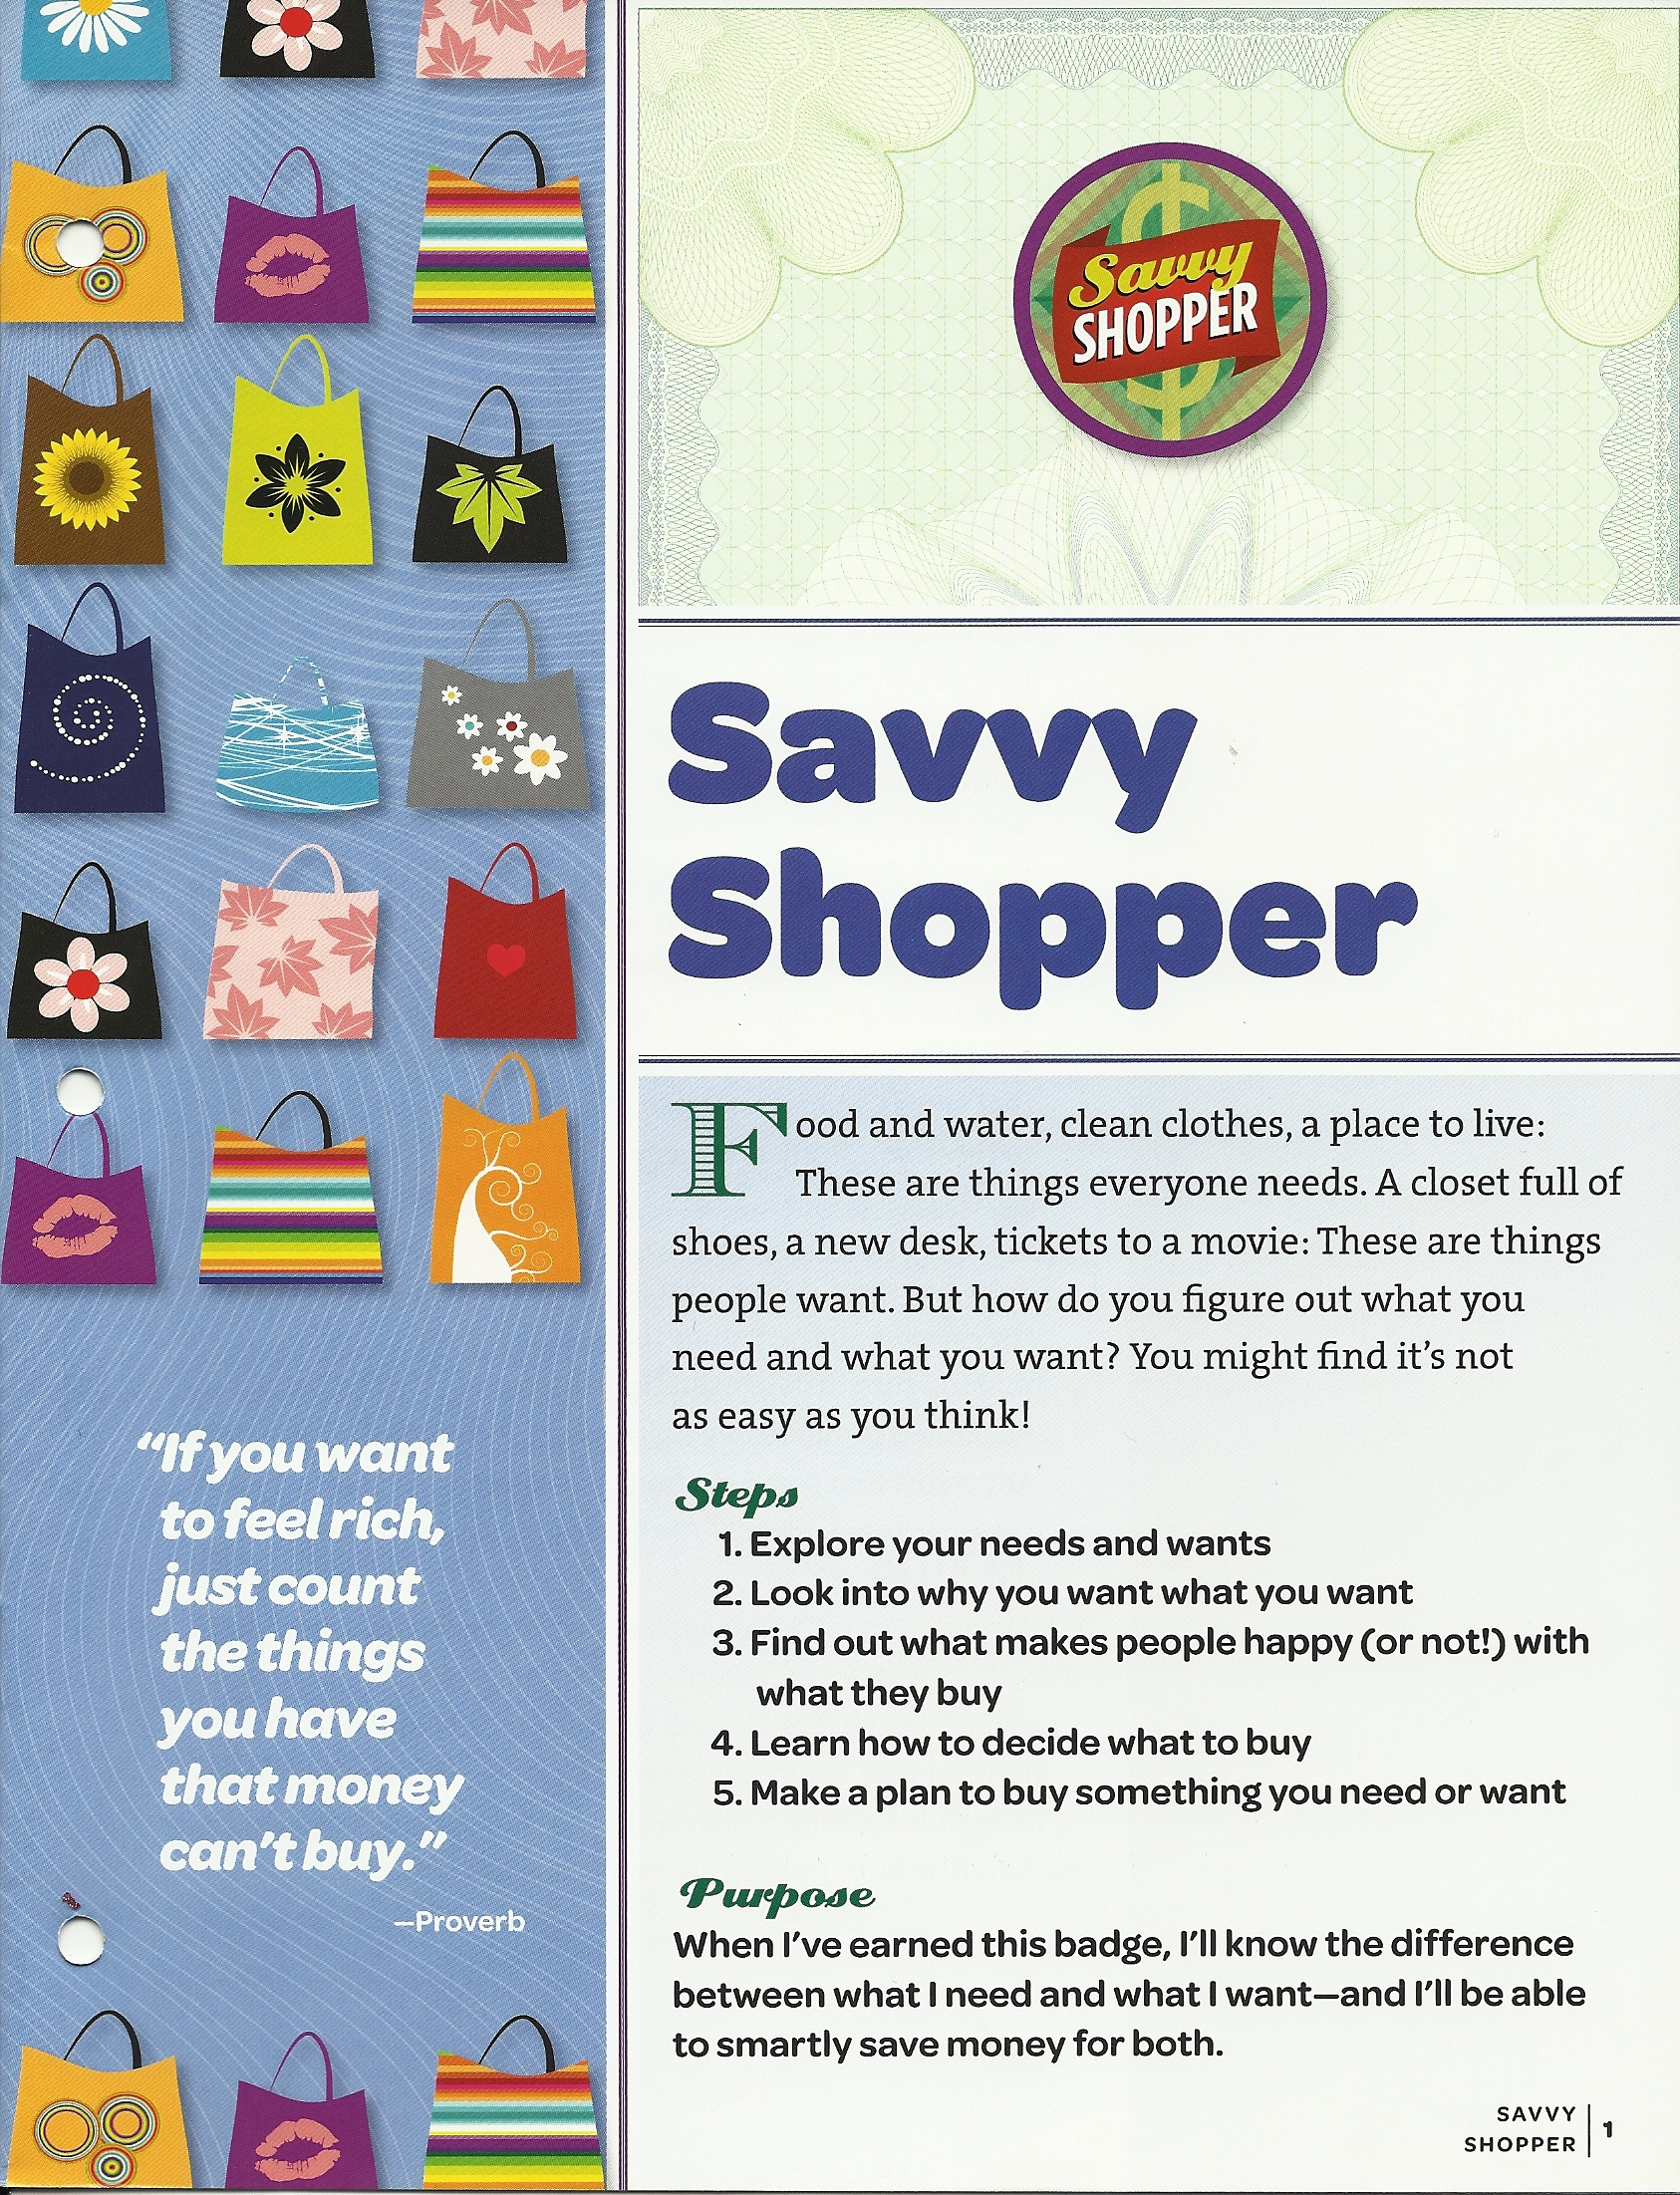 Savvy Shopper